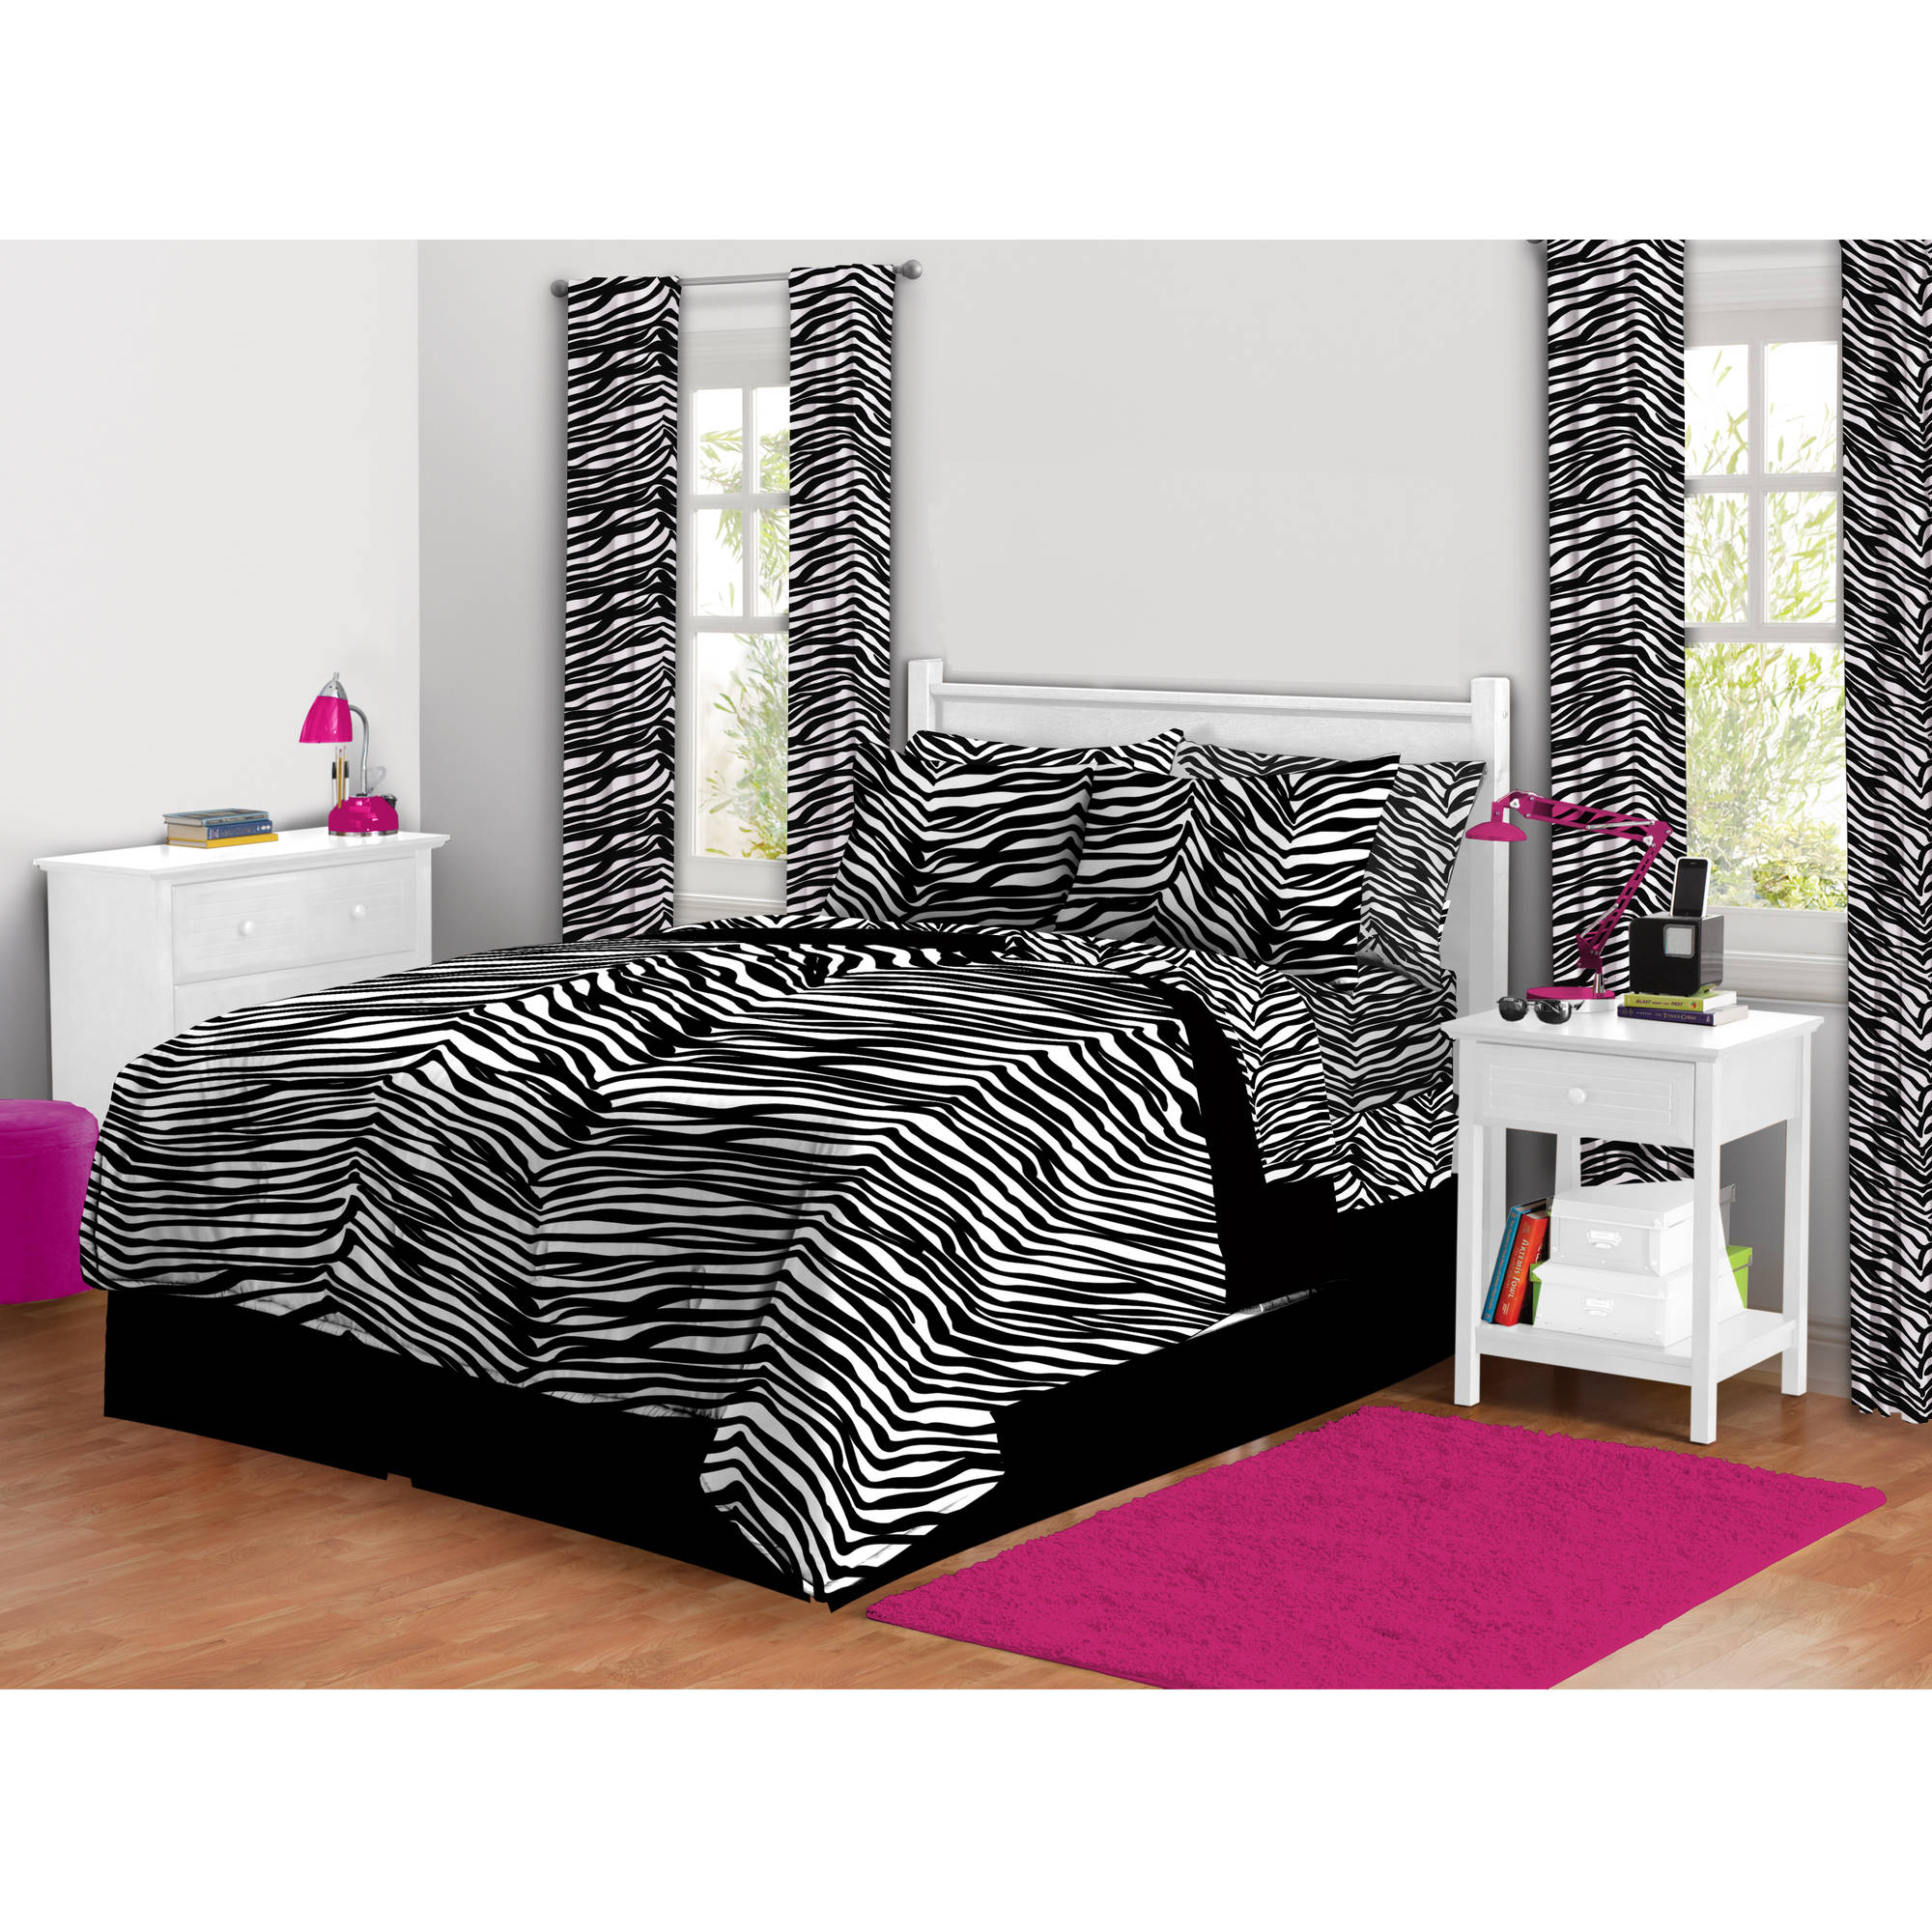 Black and white bedding walmart - Black And White Bedding Walmart 33